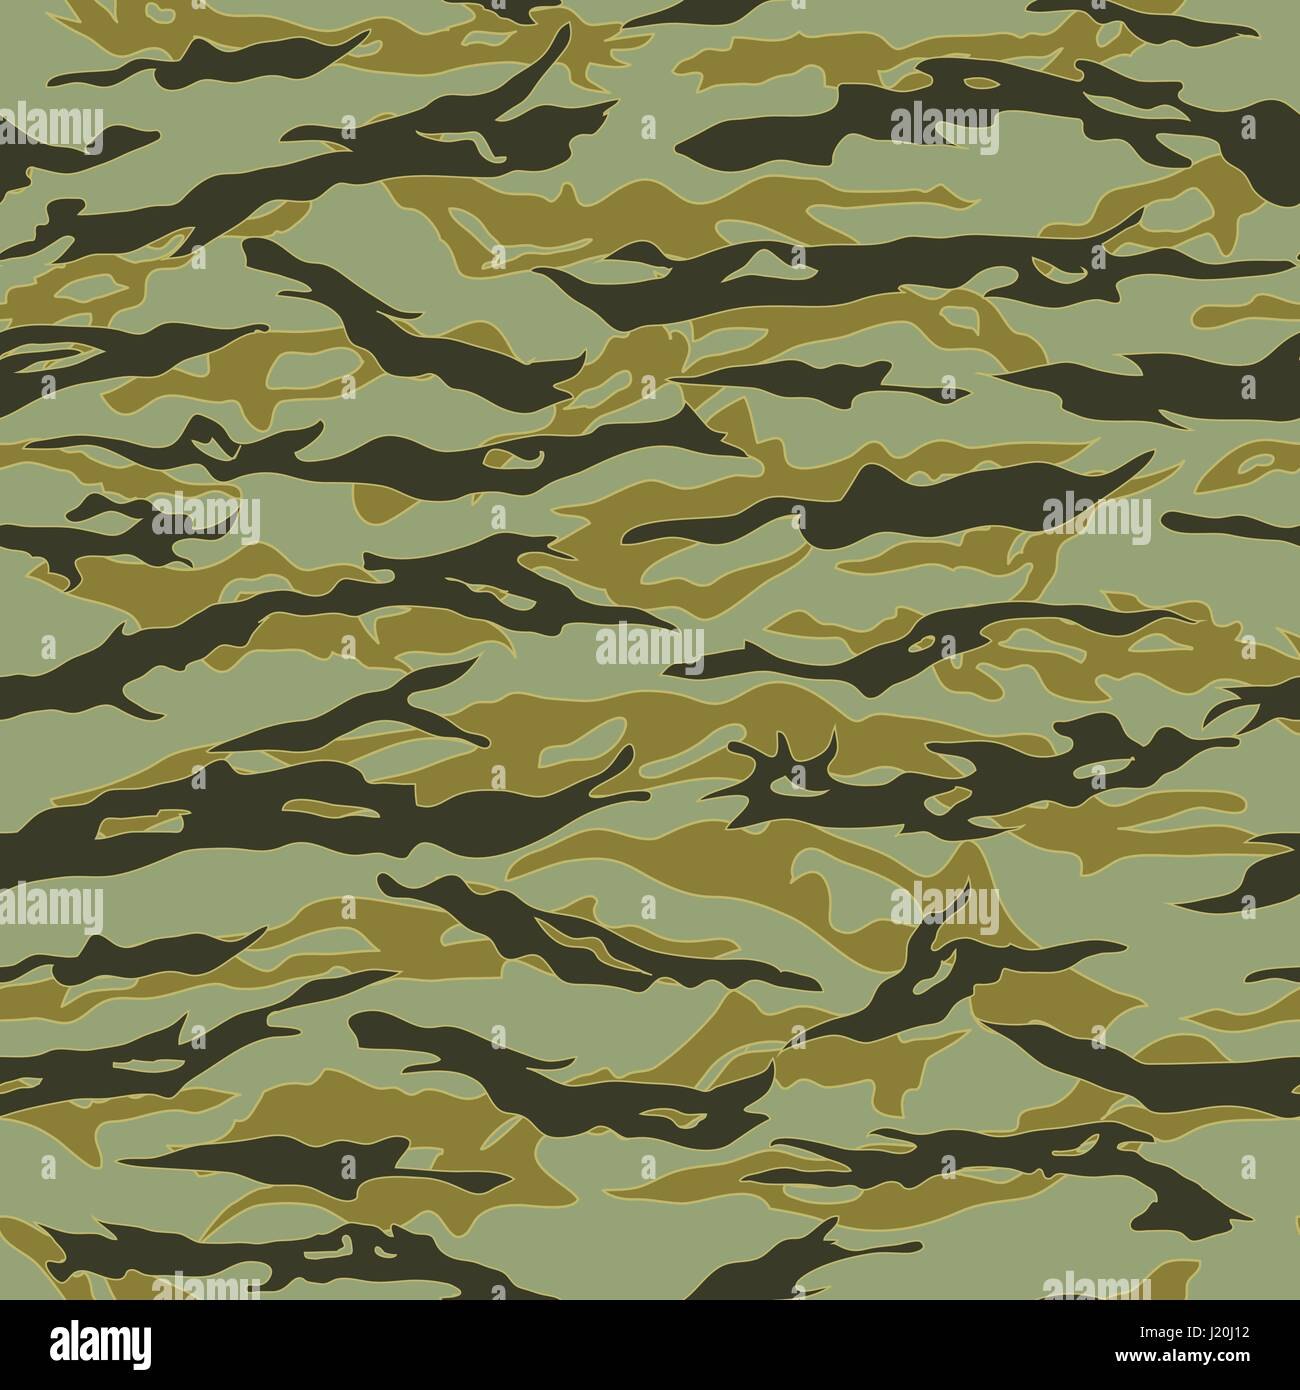 Forest Tiger stripe Camouflage seamless patterns. Vector Illustration. Stock Vector